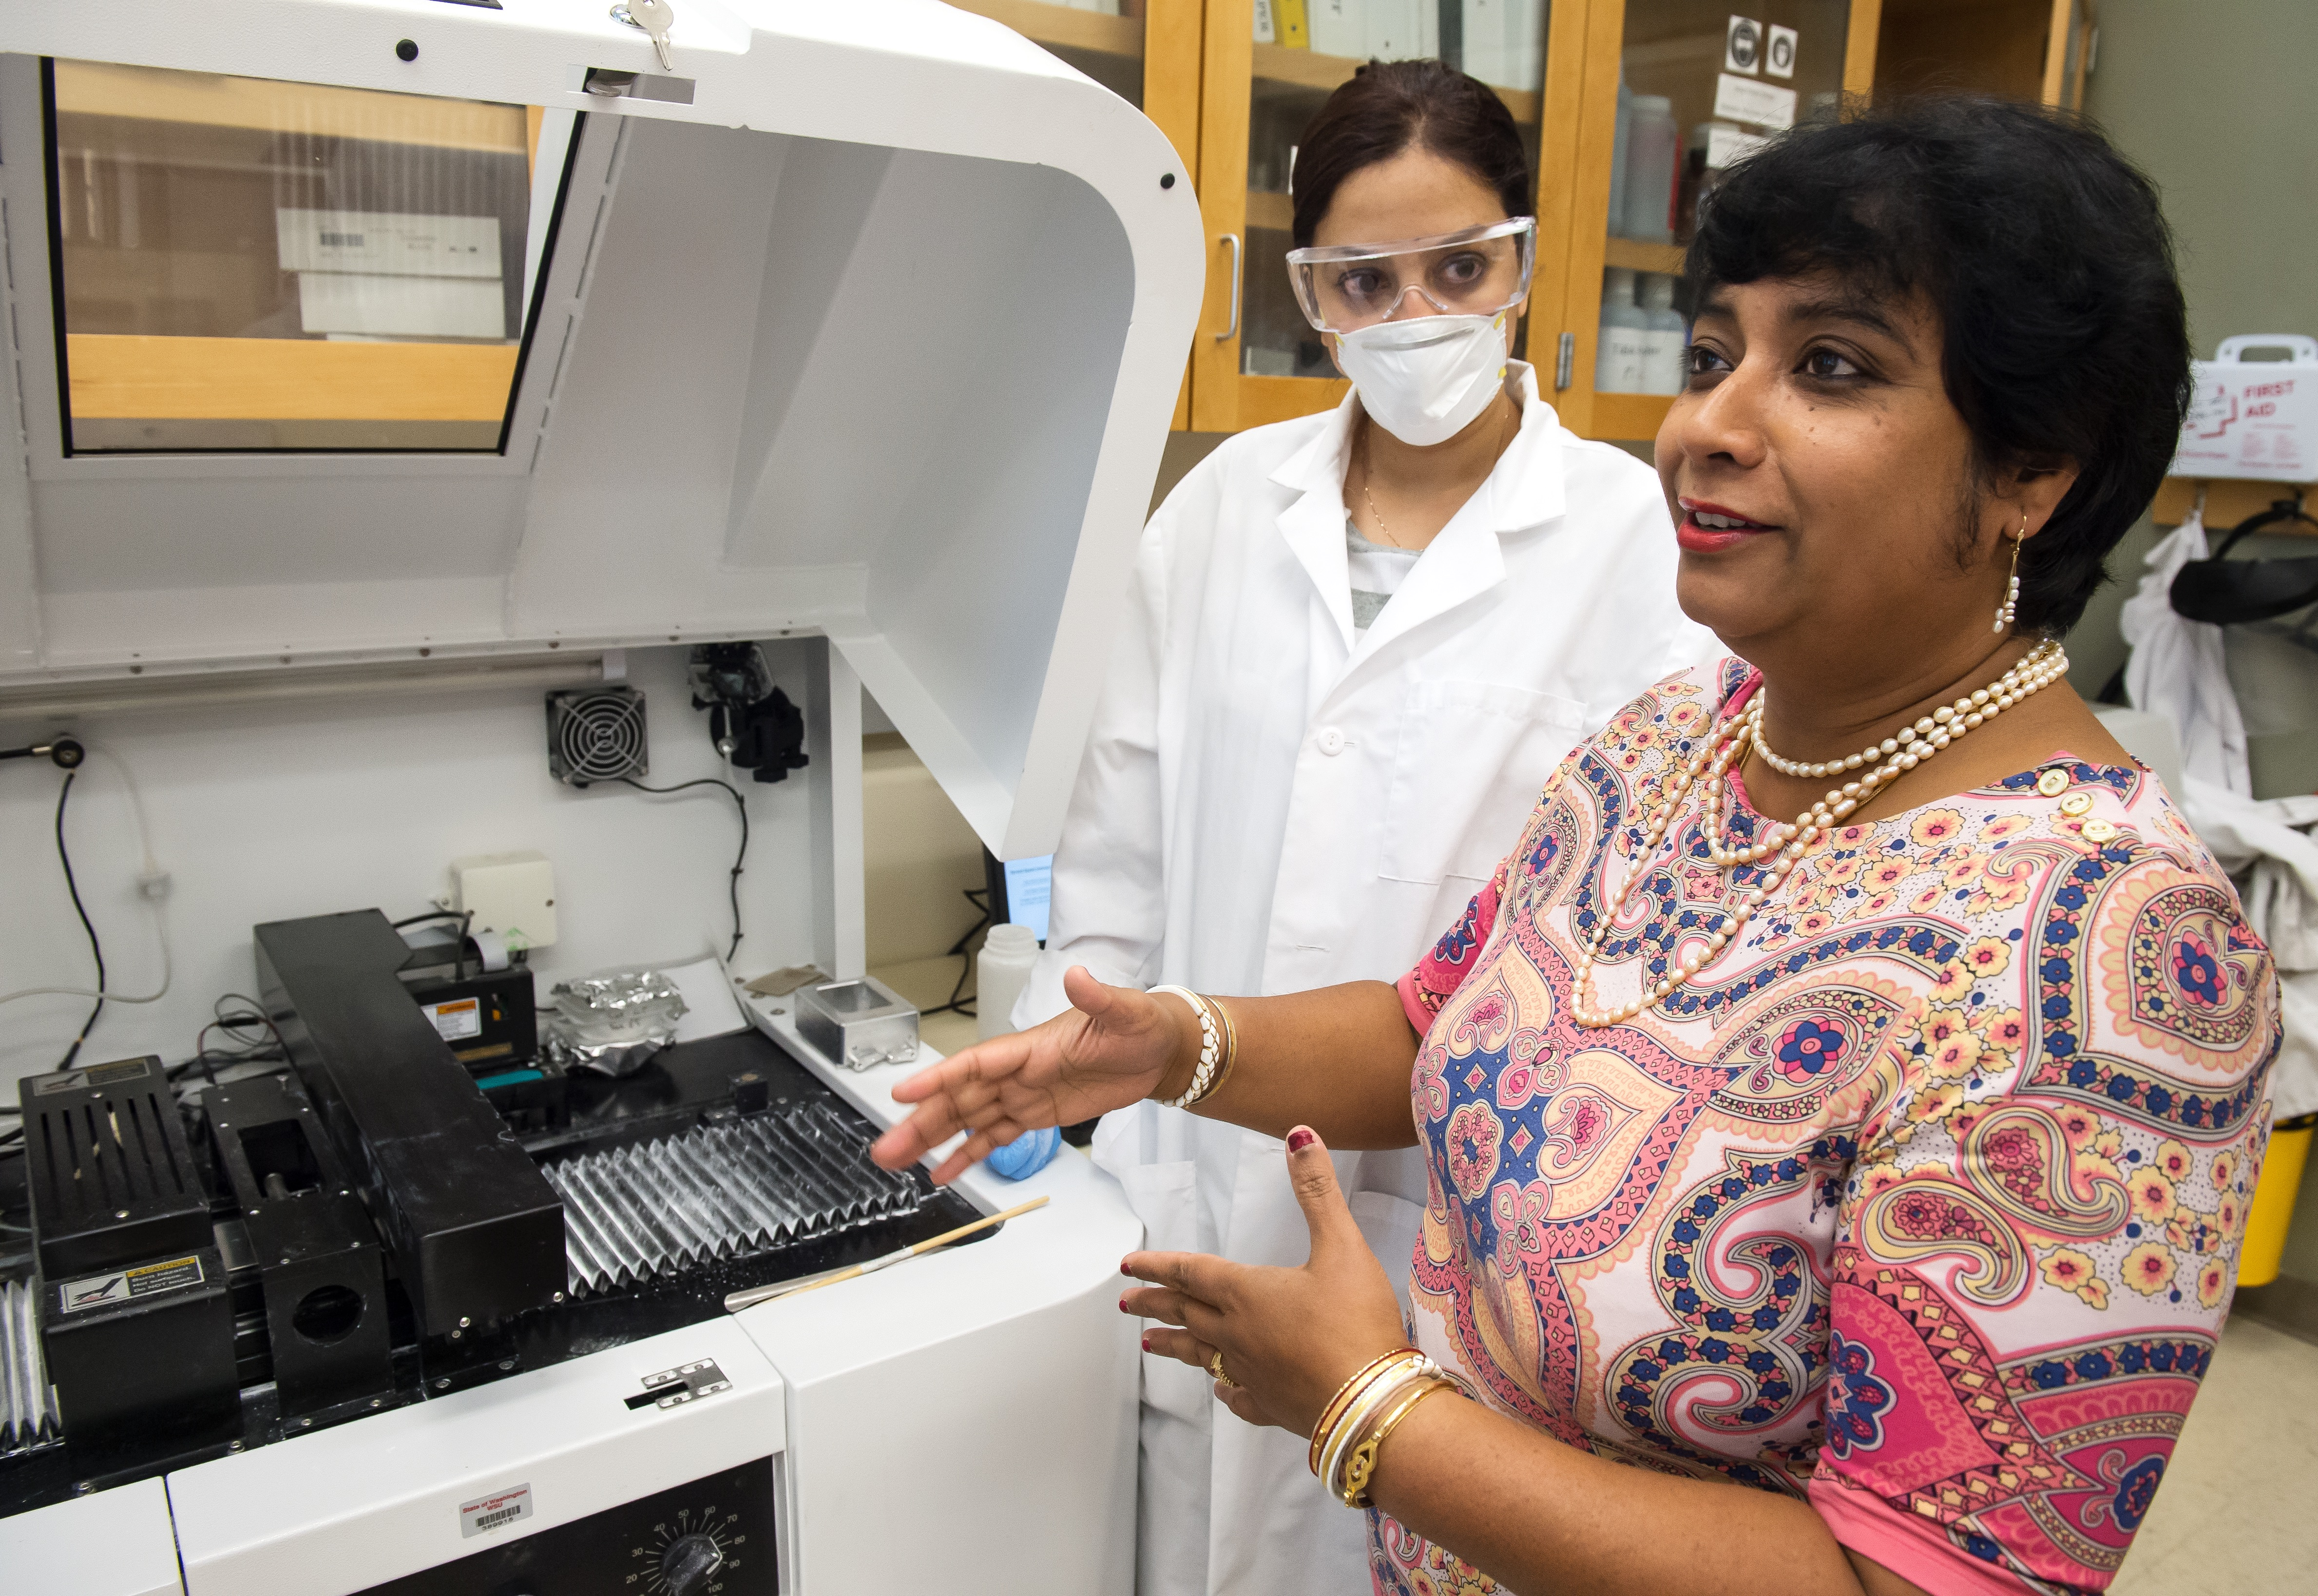 Science in your bones! Susmita Bose and the biomechanical 3-D printing she and her graduate students are researching.